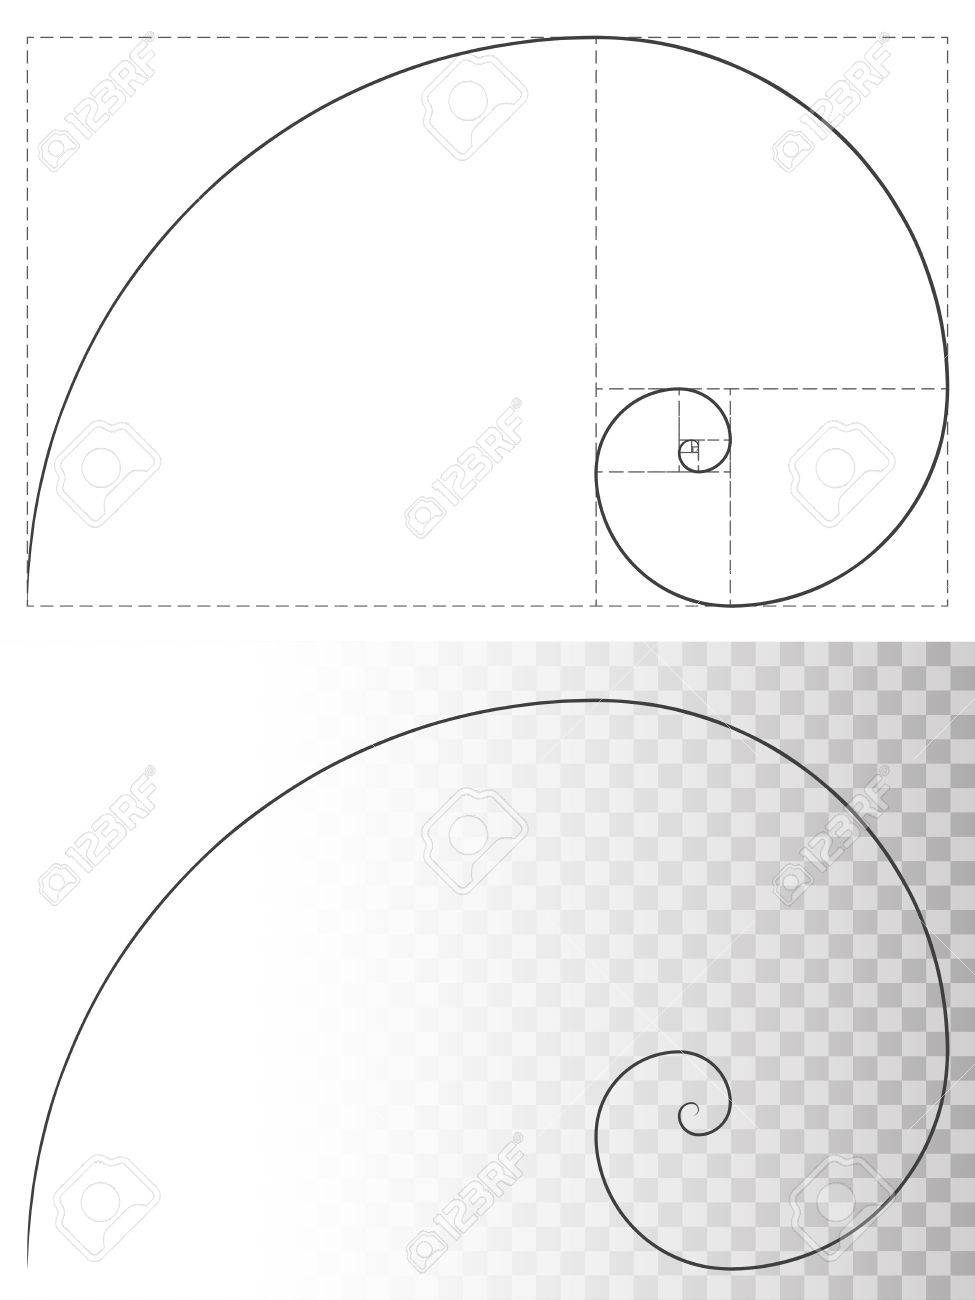 golden ratio spiral line vector template beauty and harmony